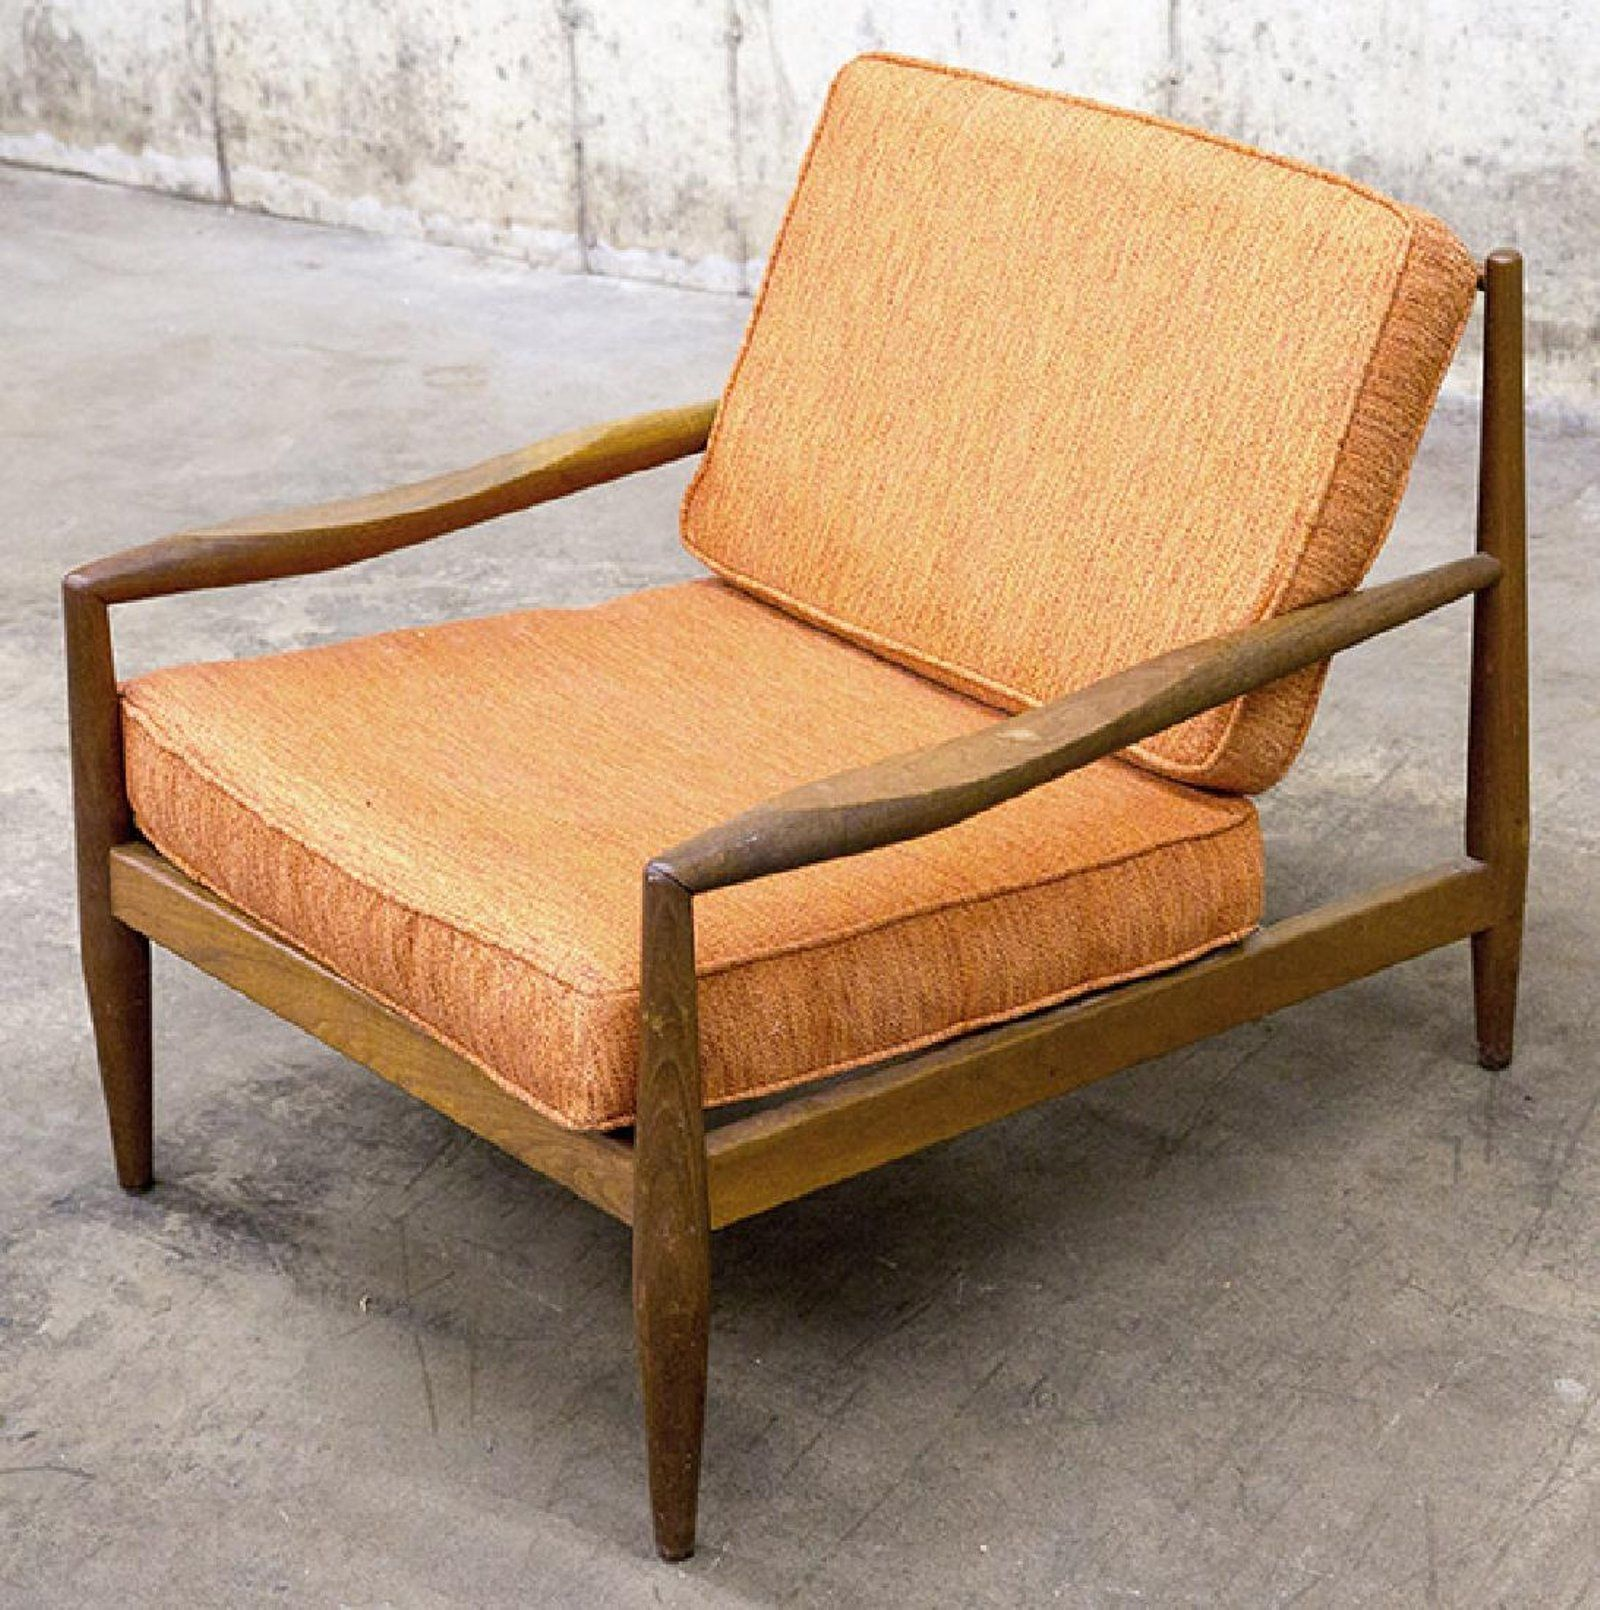 Adrian Pearsall Lounge Chair Tulip Cushion A 1950 S On Bought Line